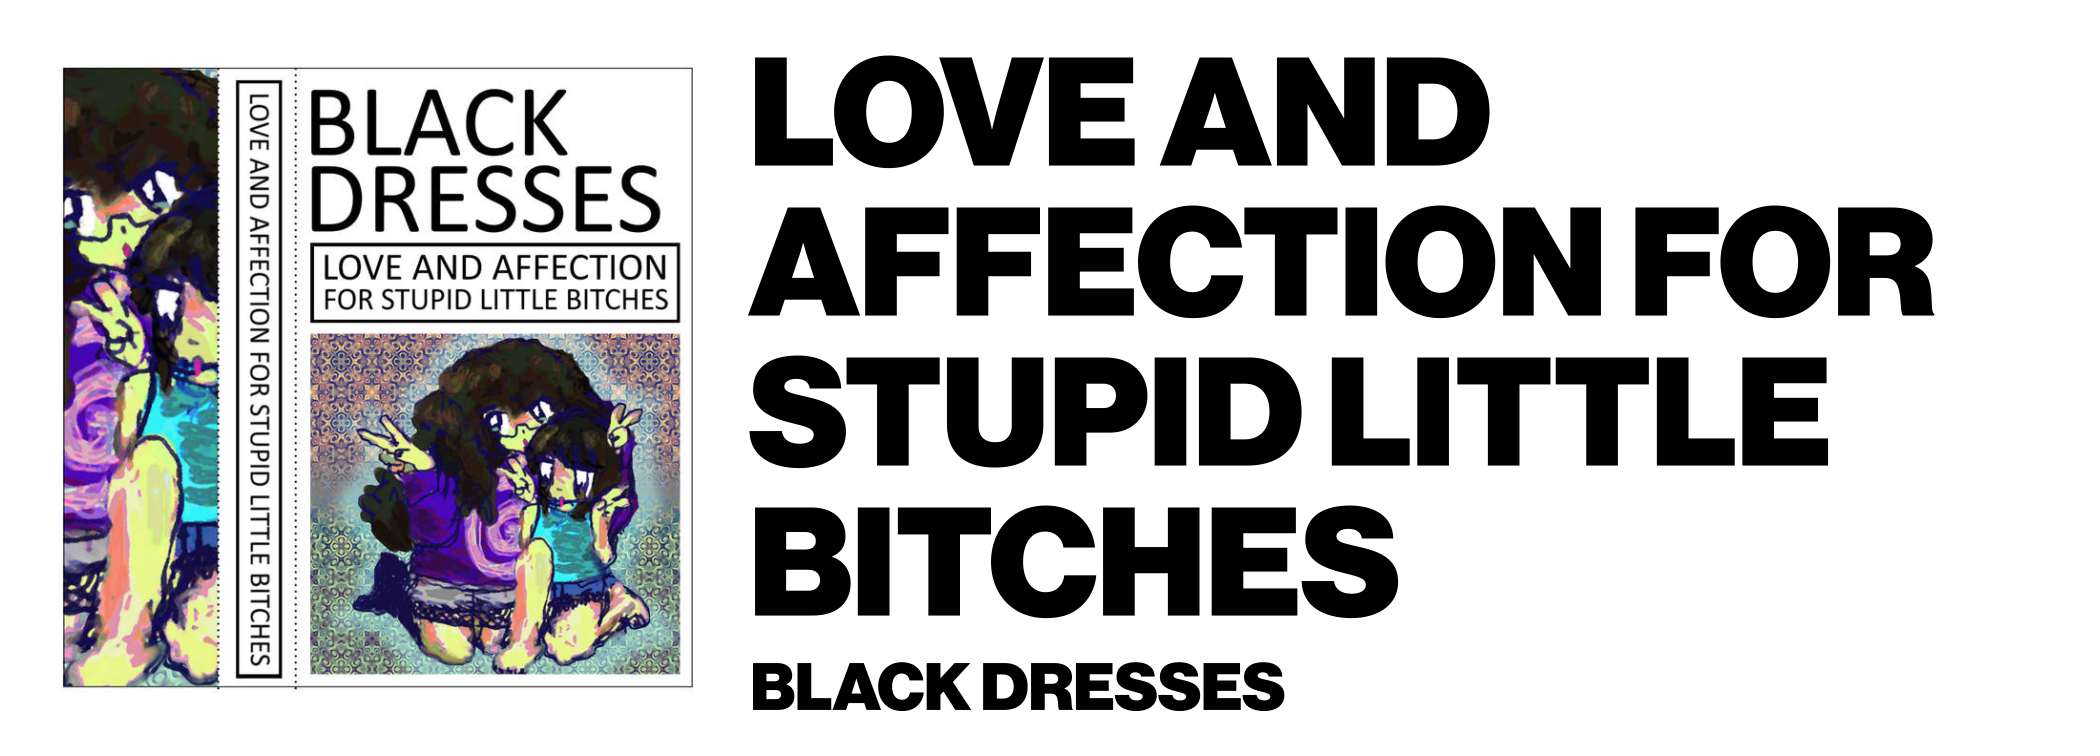 1576878276621-Black-Dresses-LOVE-AND-AFFECTION-FOR-STUPID-LITTLE-BITCHES